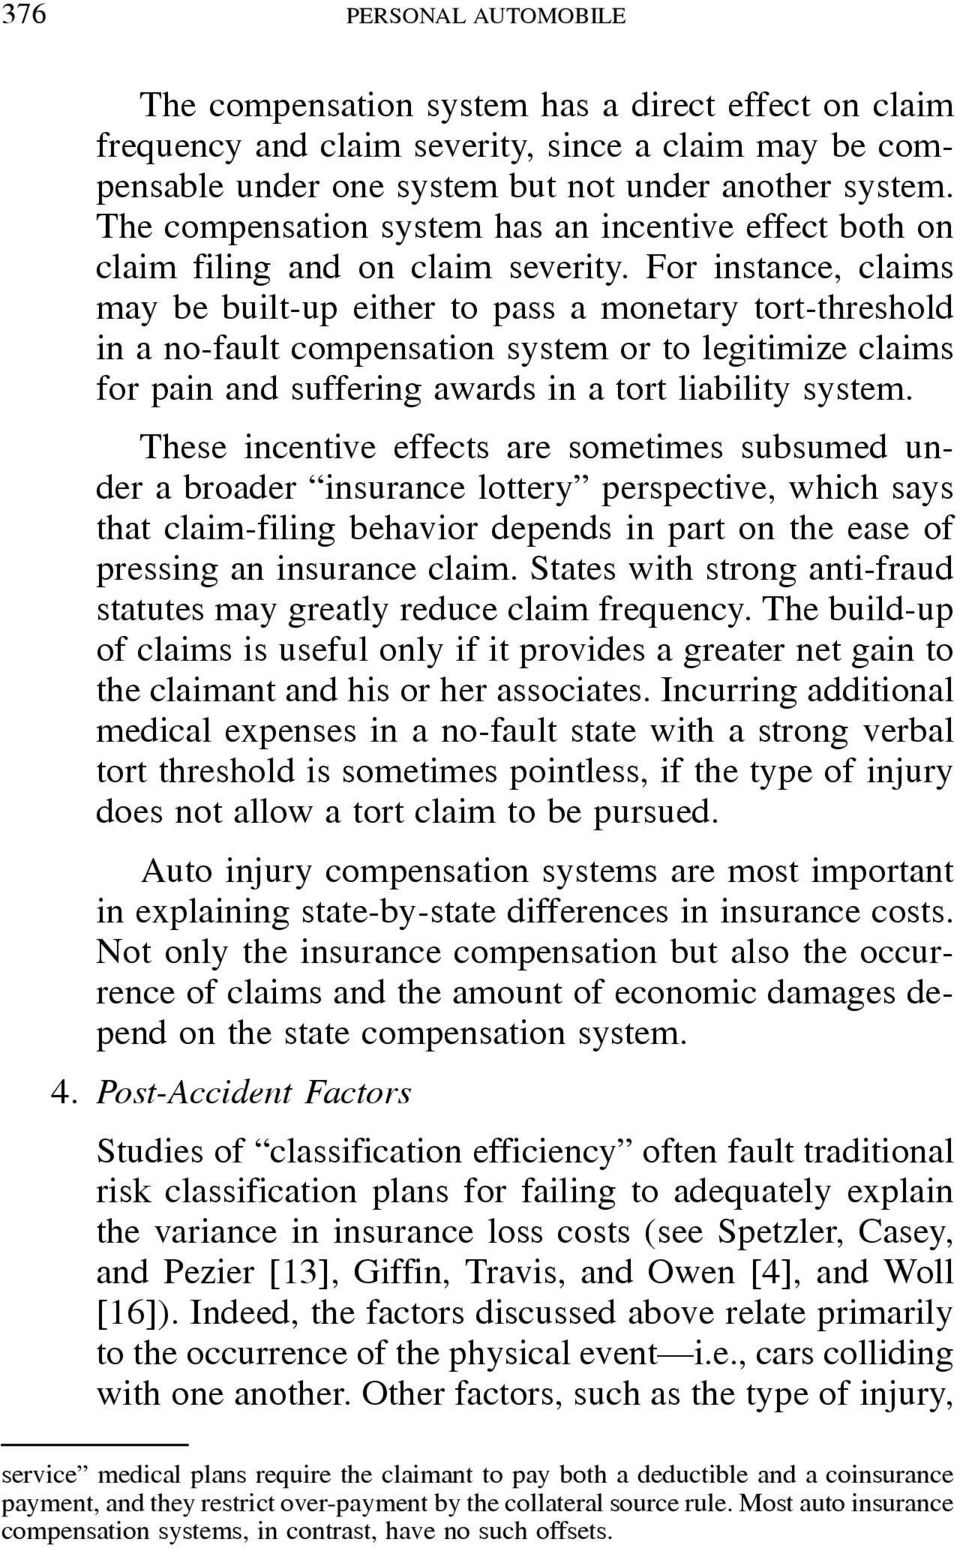 For instance, claims may be built-up either to pass a monetary tort-threshold in a no-fault compensation system or to legitimize claims forpainandsufferingawardsinatortliabilitysystem.